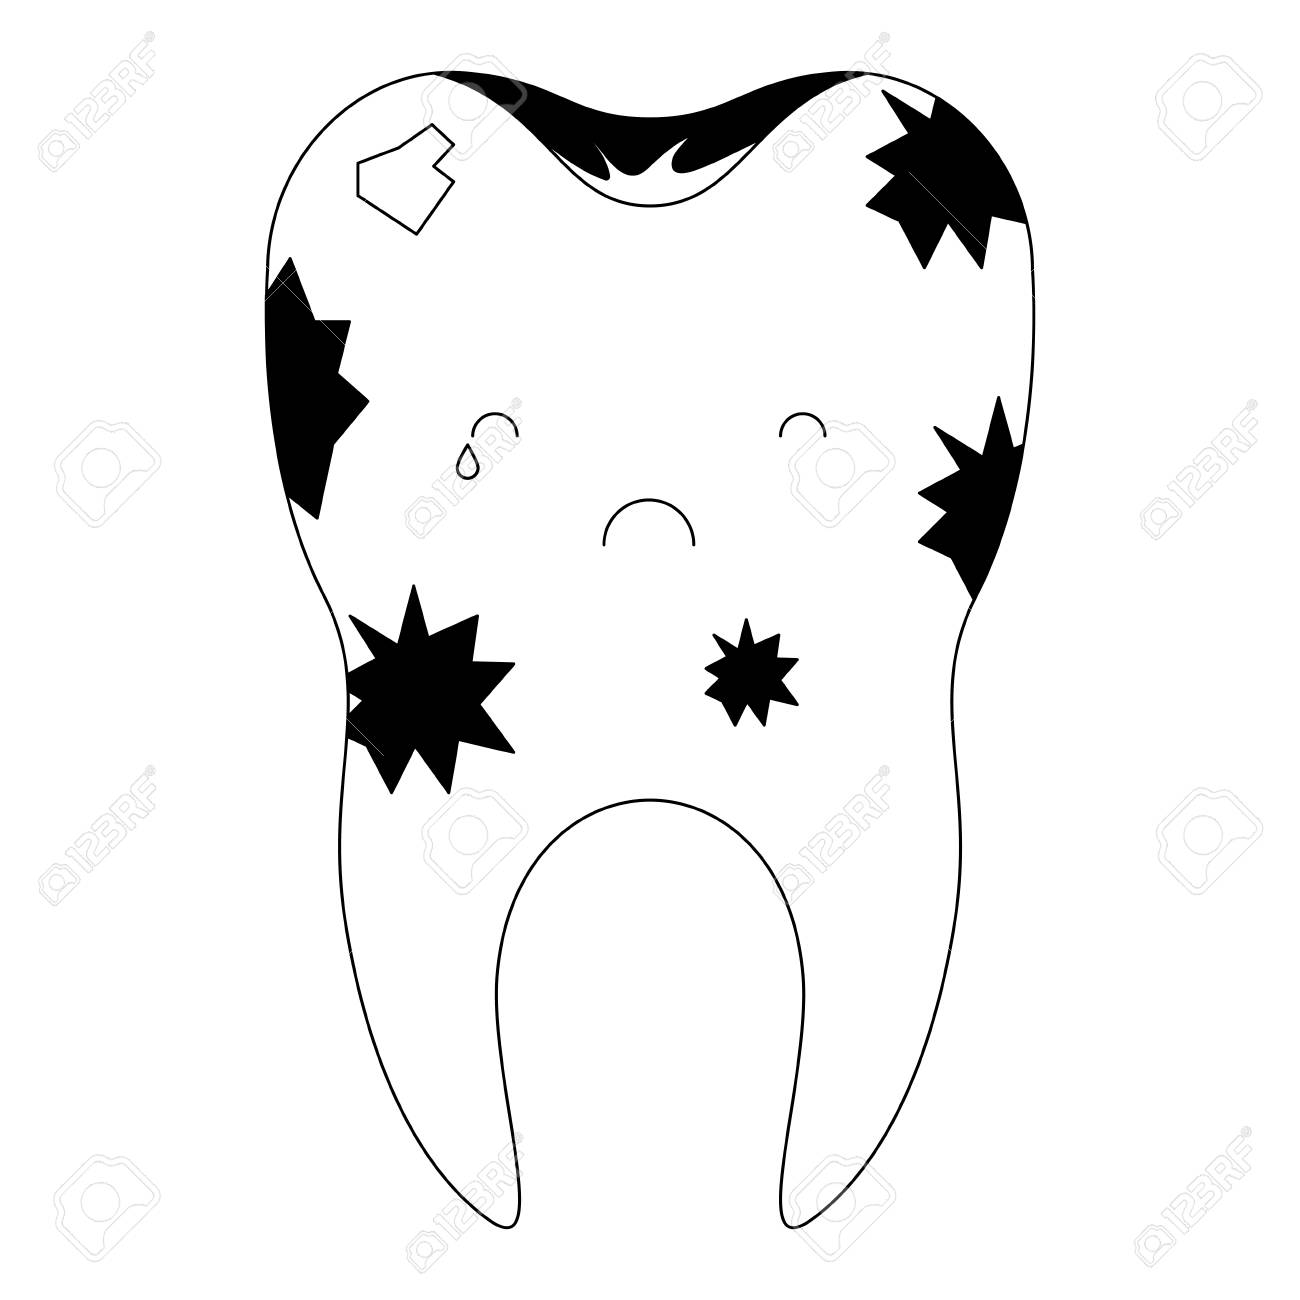 dirty tooth with root in black silhouette vector illustration.